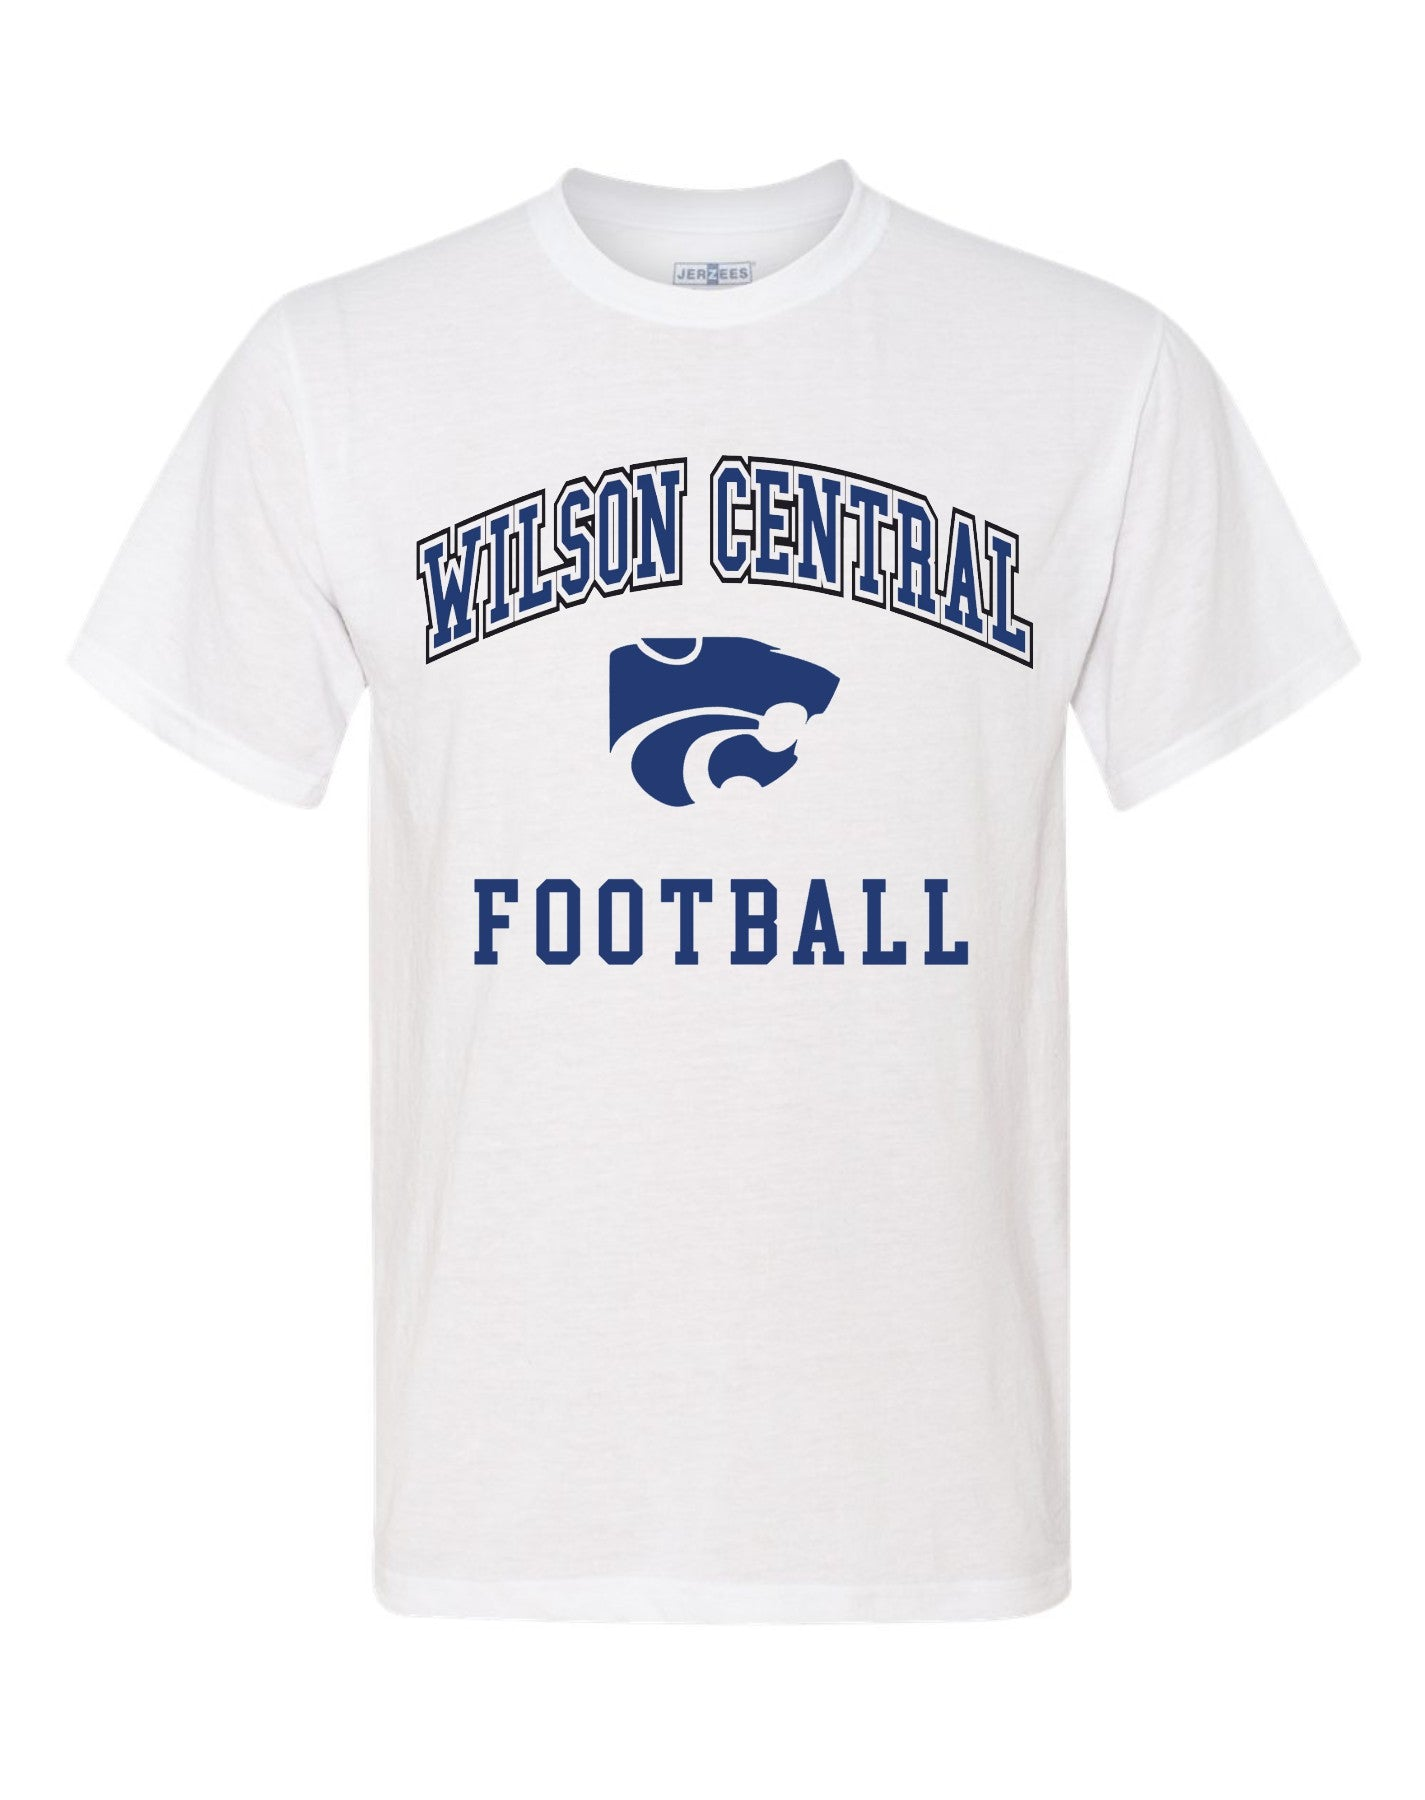 Wilson Central Football Team - White Short Sleeve